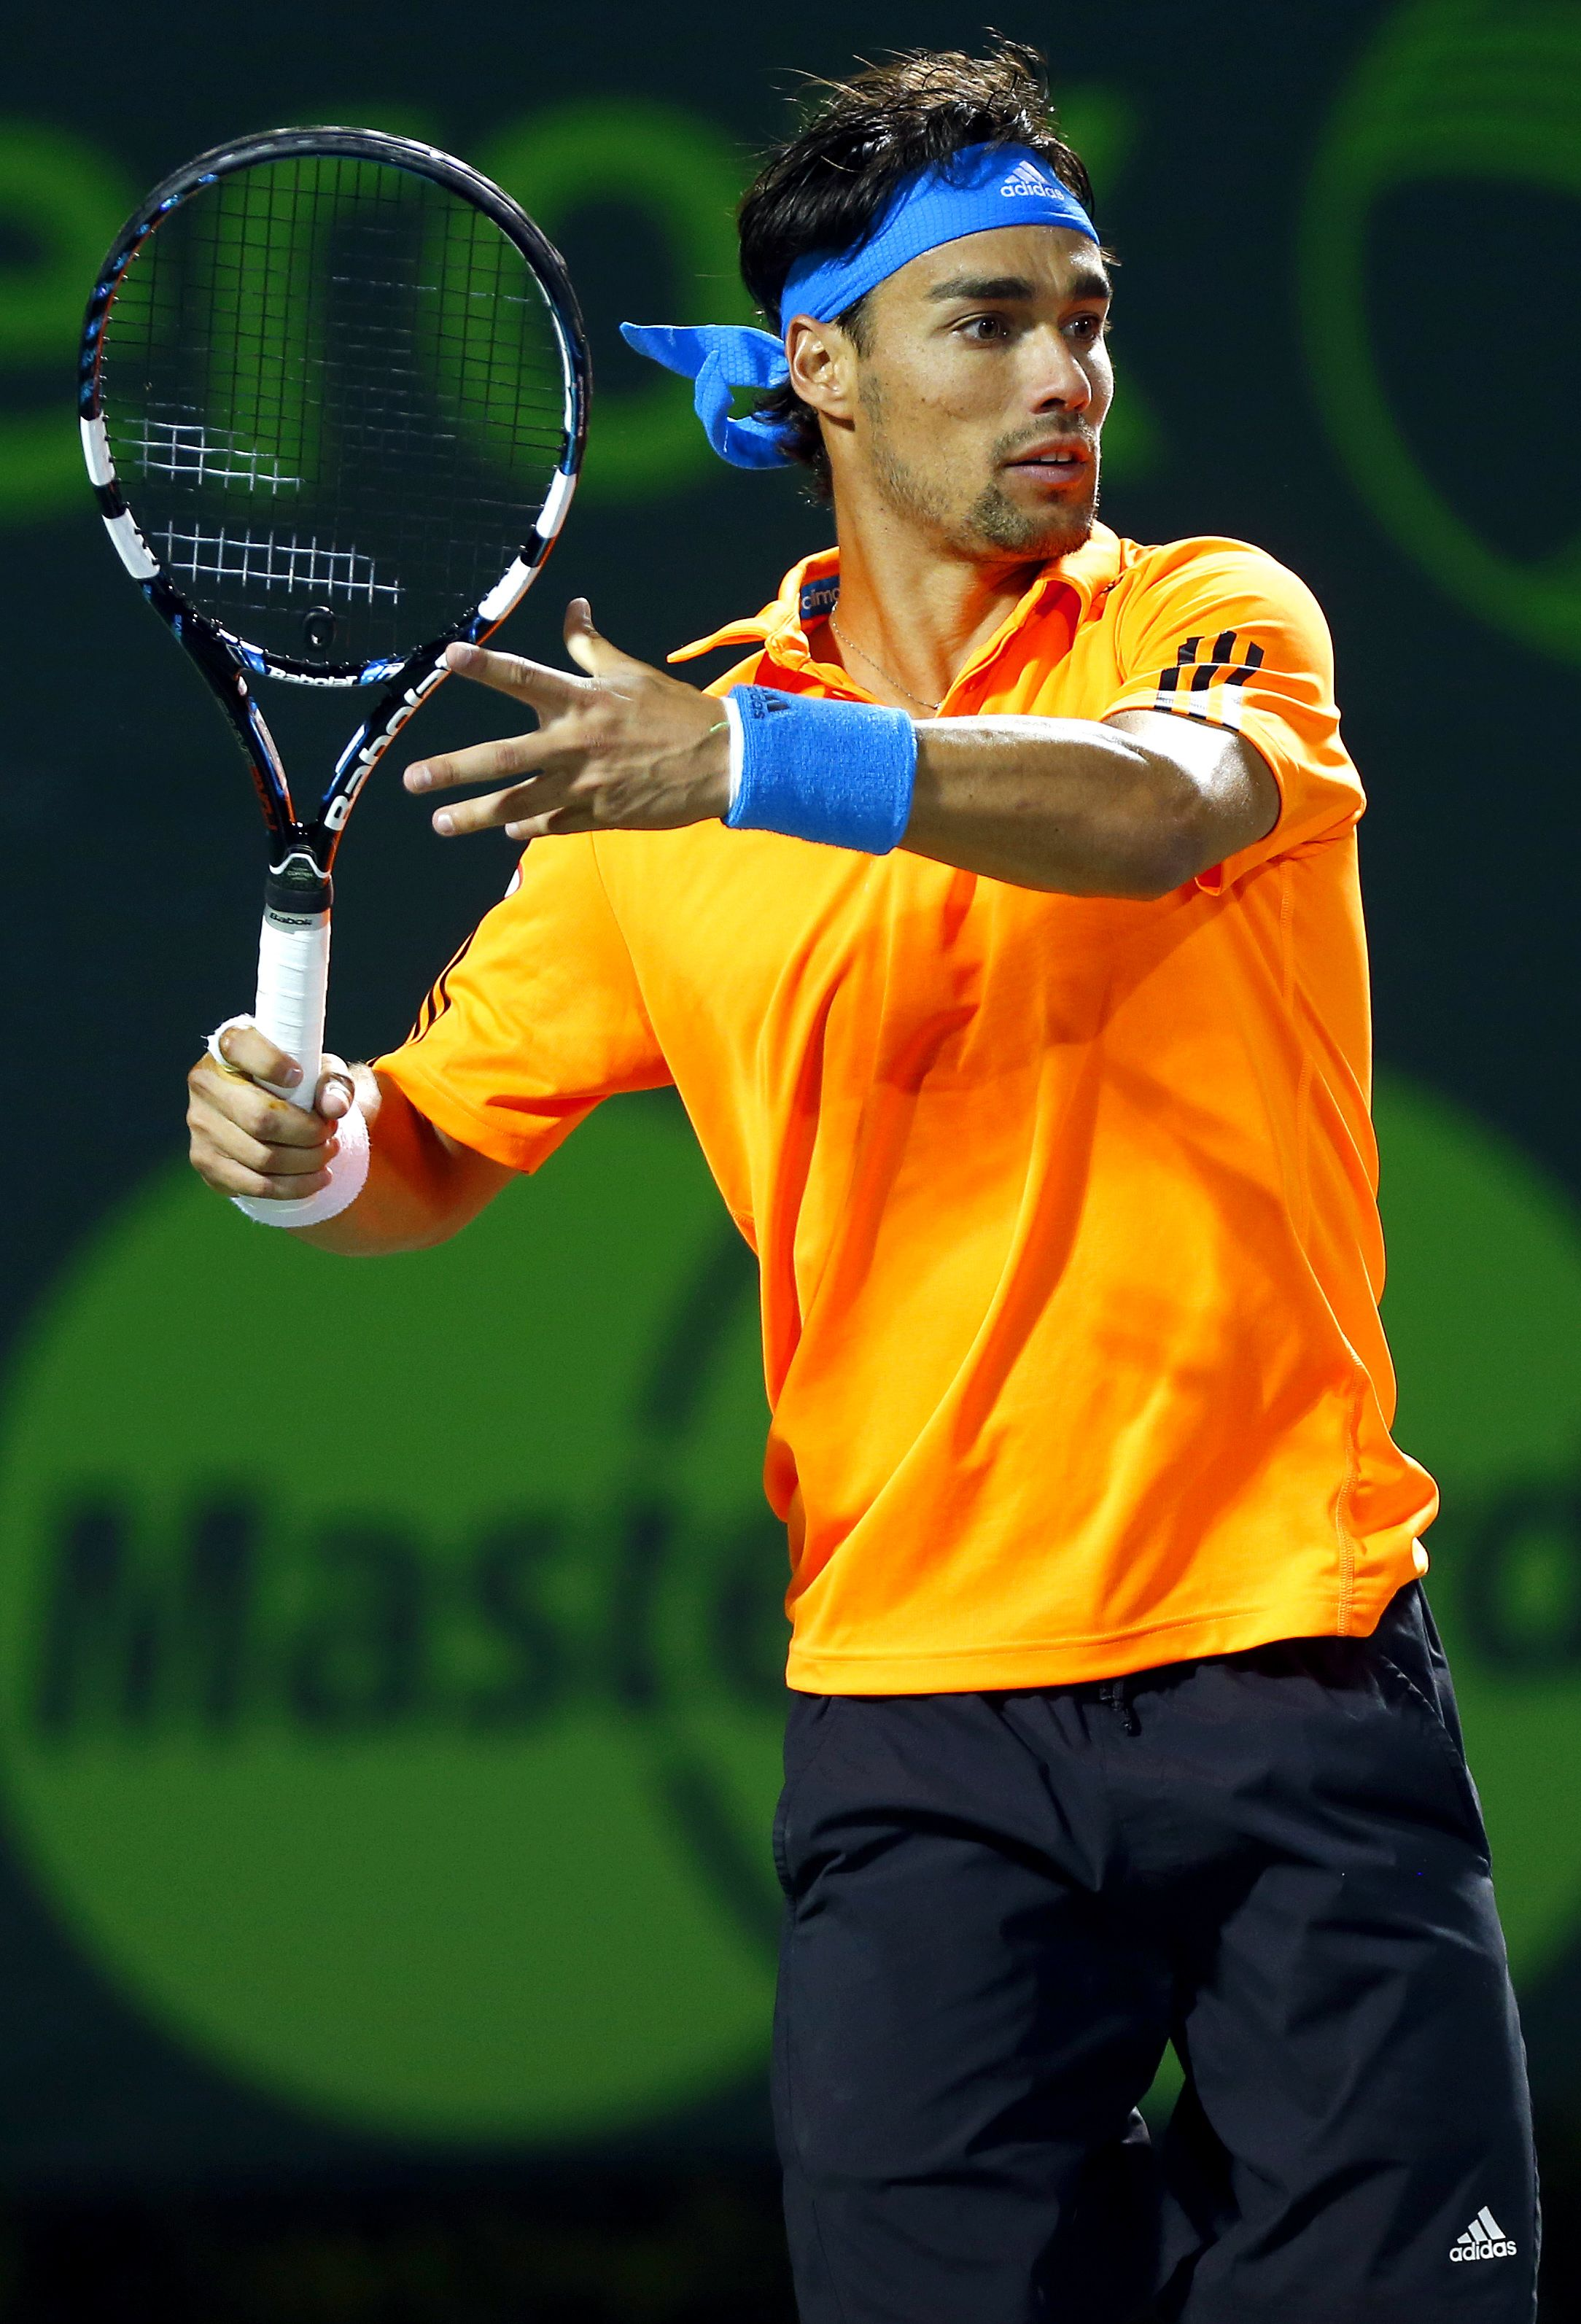 fabio fognini - photo #15